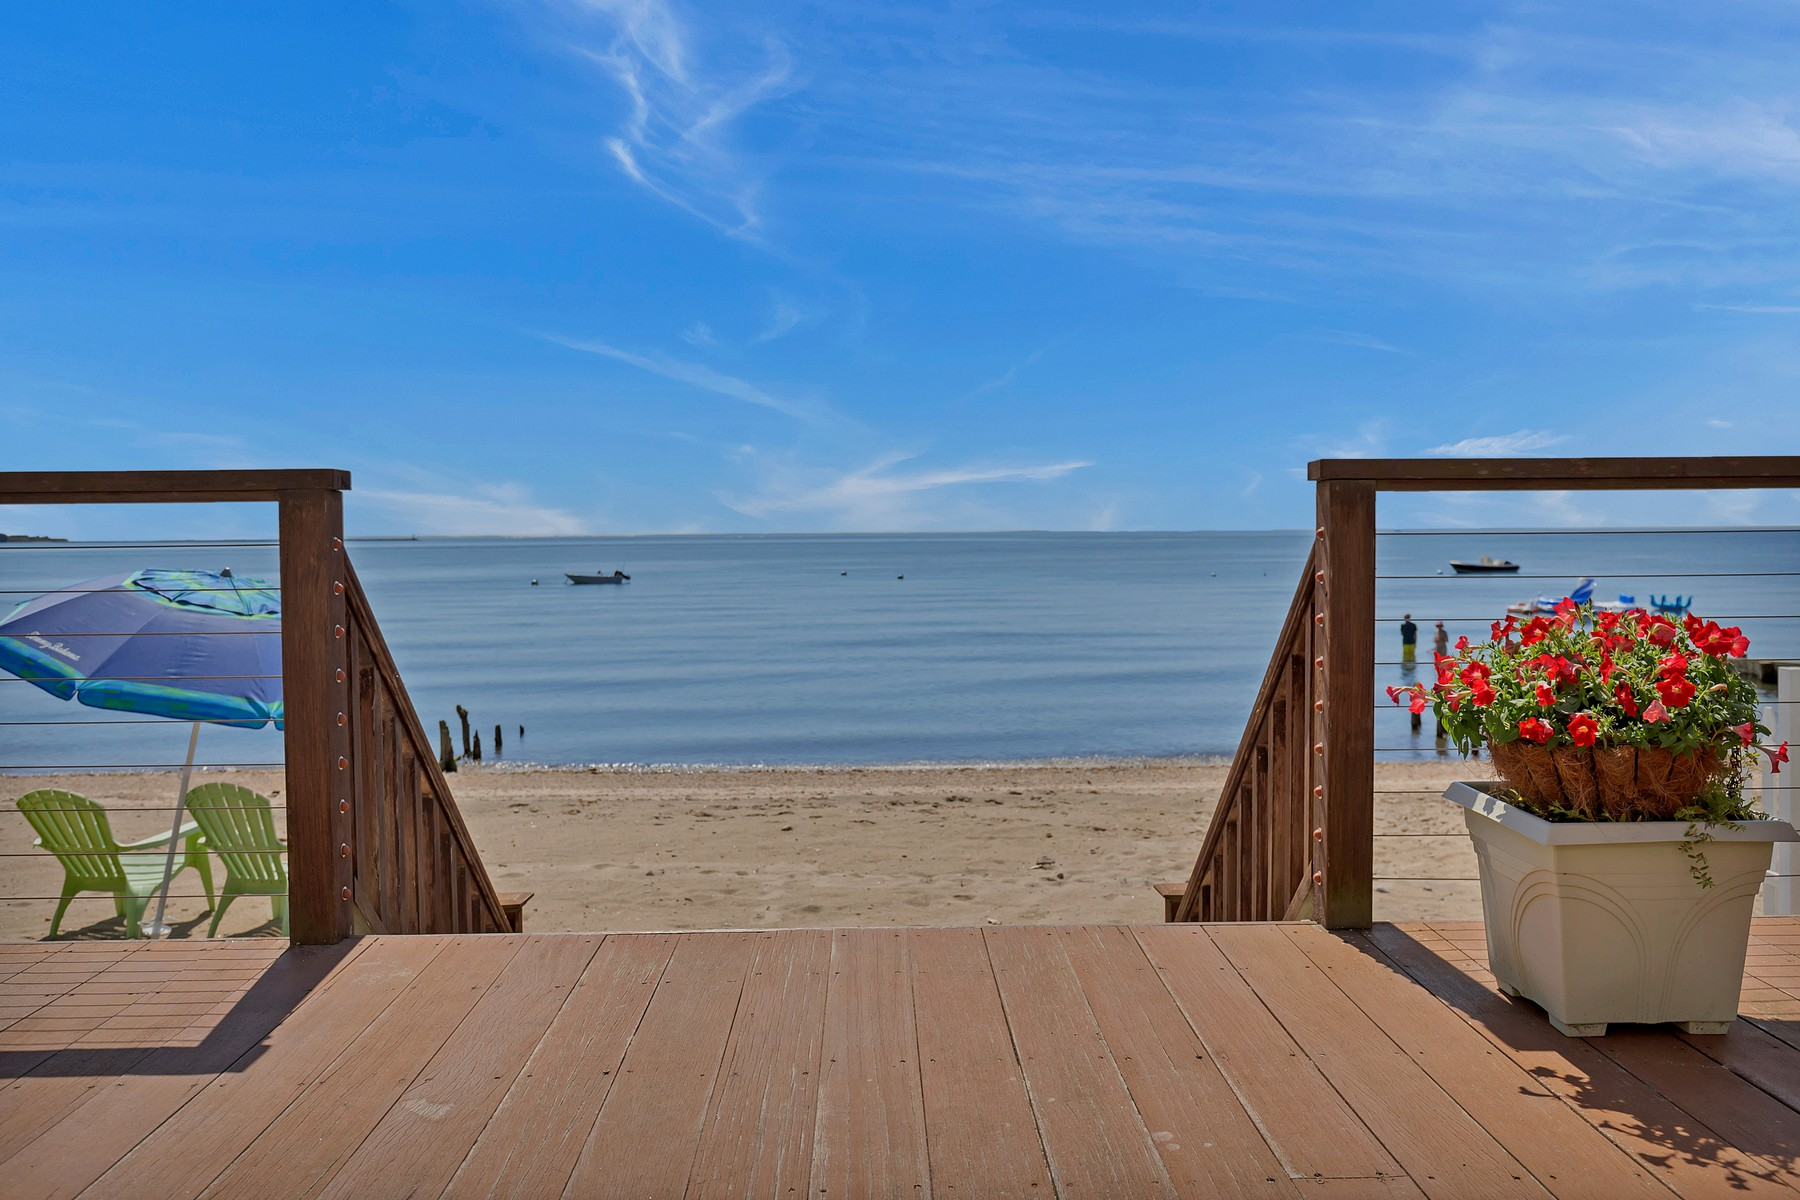 Single Family Homes for Sale at Two Waterfront Homes on a Sandy Beach 97 Shore Road Clinton, Connecticut 06413 United States